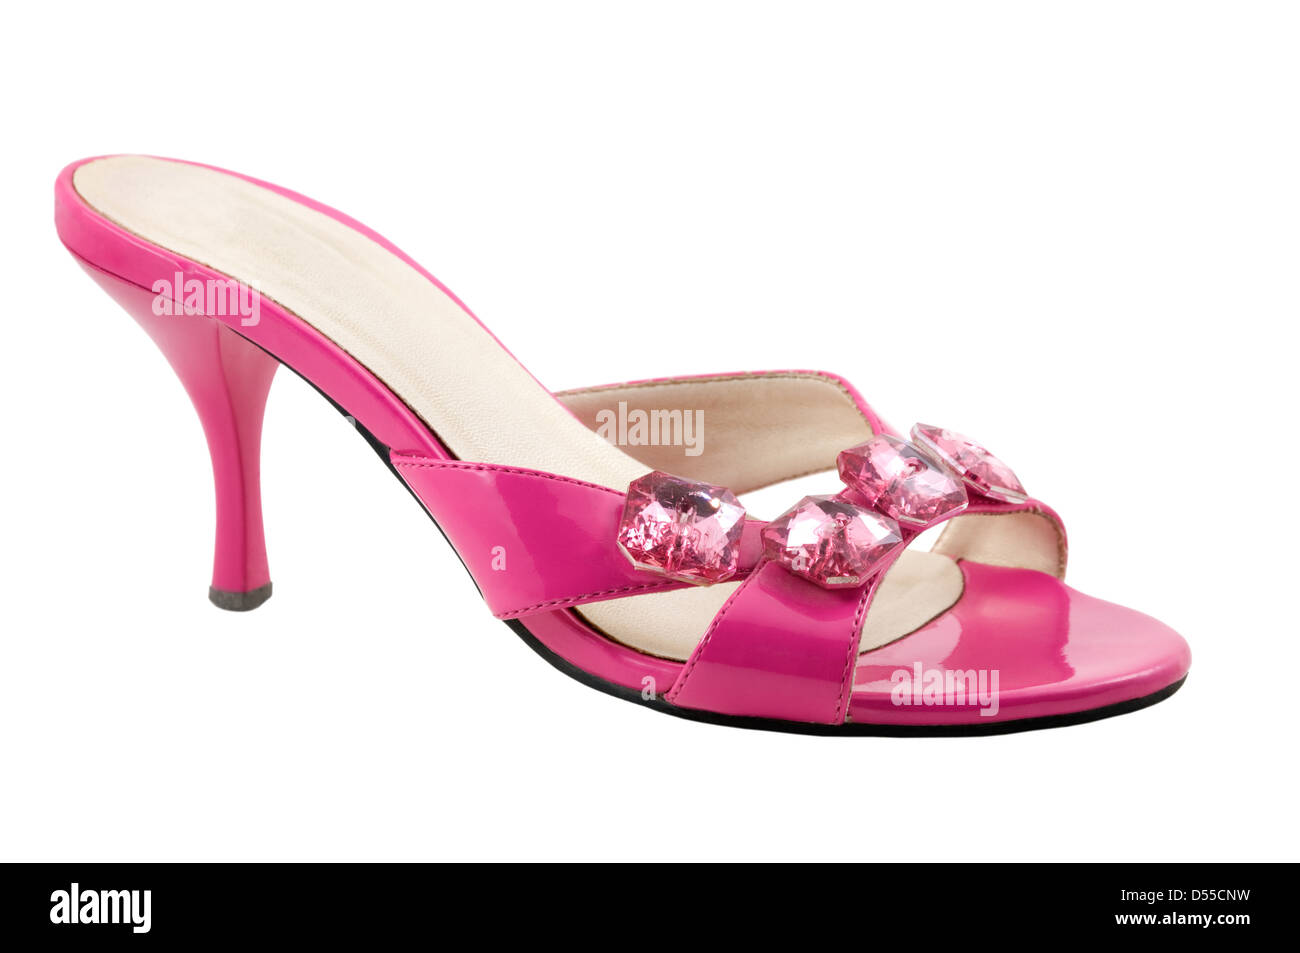 The pink shoe are photographed on the white background - Stock Image